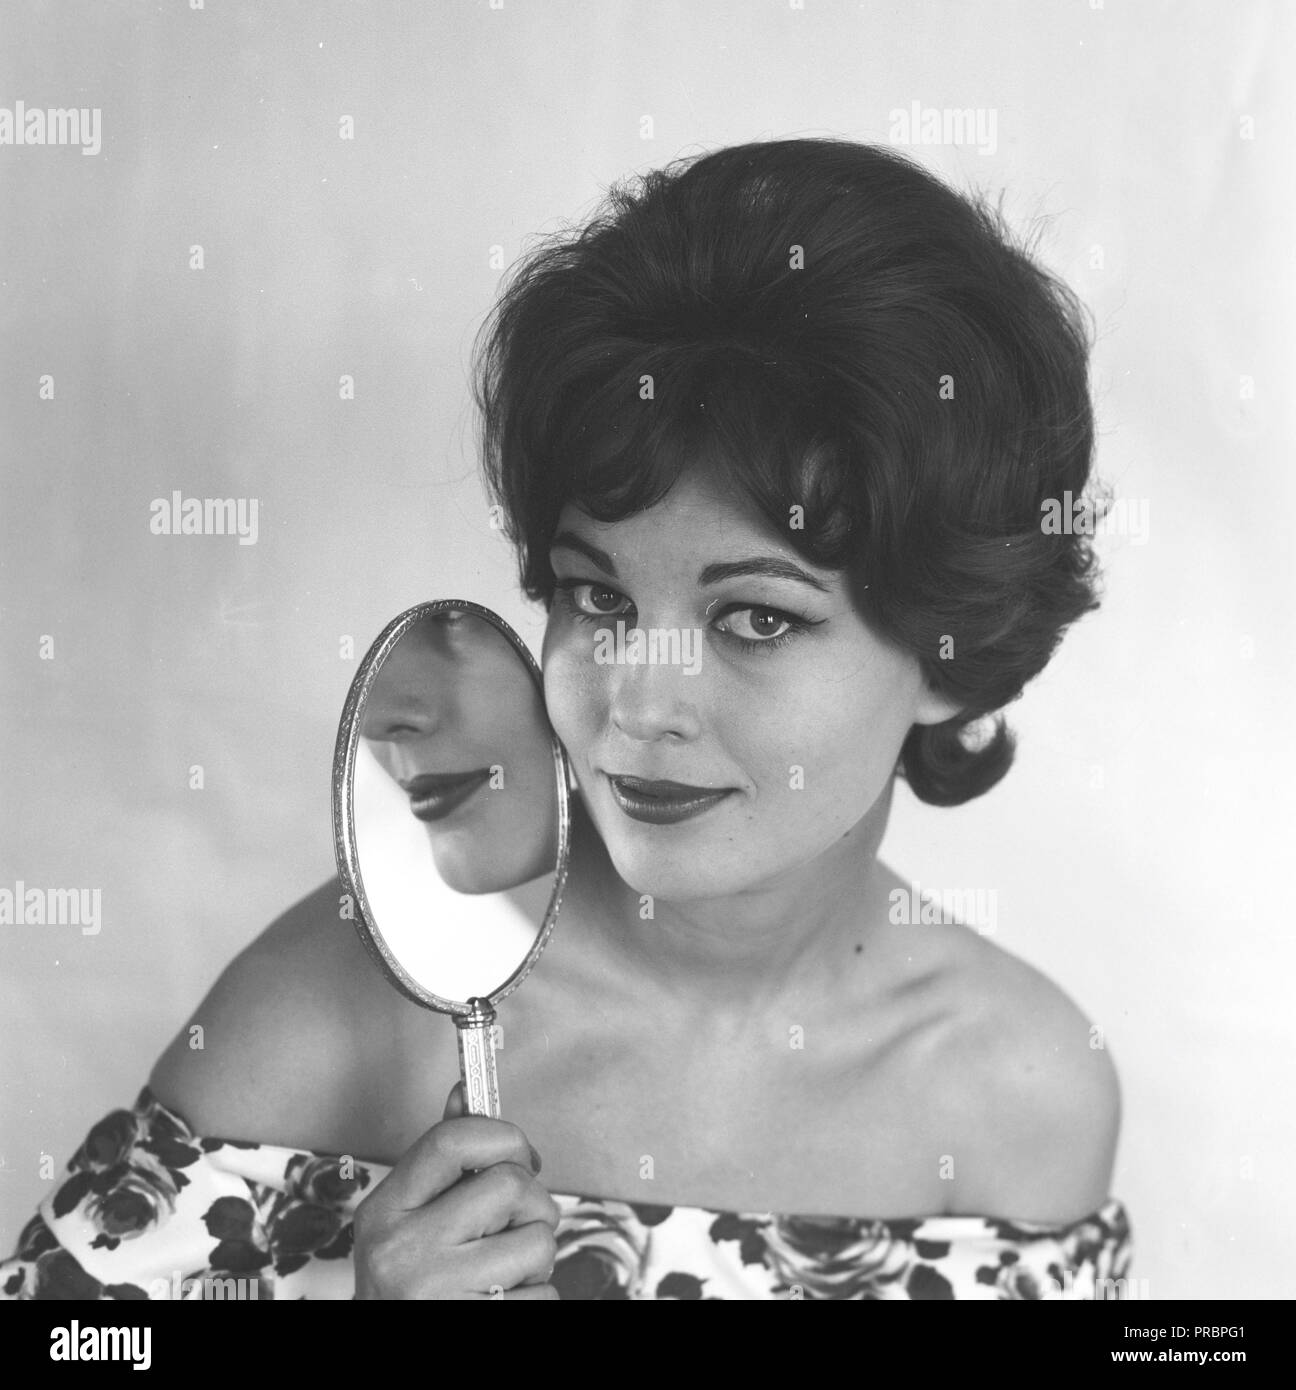 Makeup in the 1950s. A young woman is holding a makeup mirror close to her face. Sweden March 1959 - Stock Image